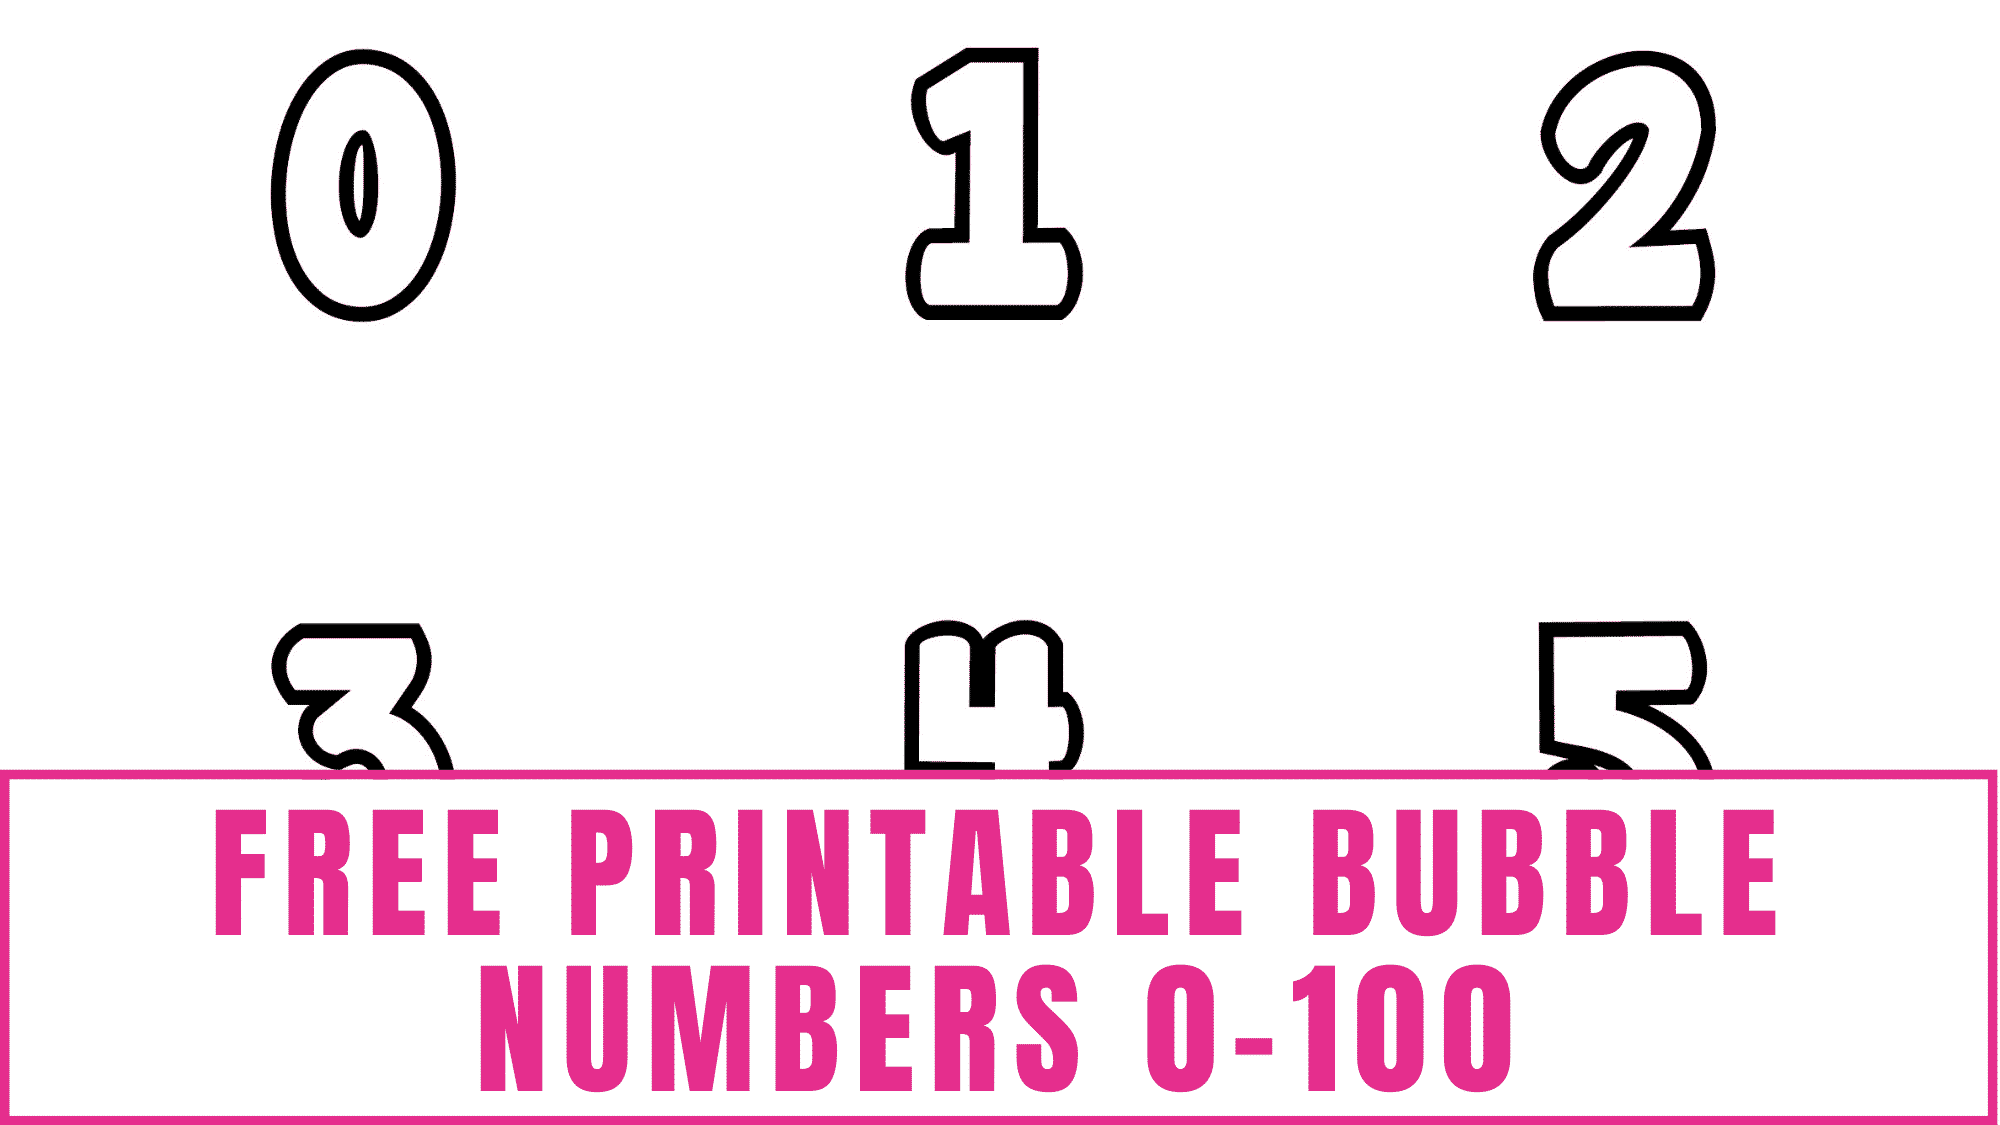 These free printable bubble numbers 0-100 will come in handy for many things like school projects, homeschooling, teaching kids how to count numbers and write numbers, craft projects, scrapbooking and more!